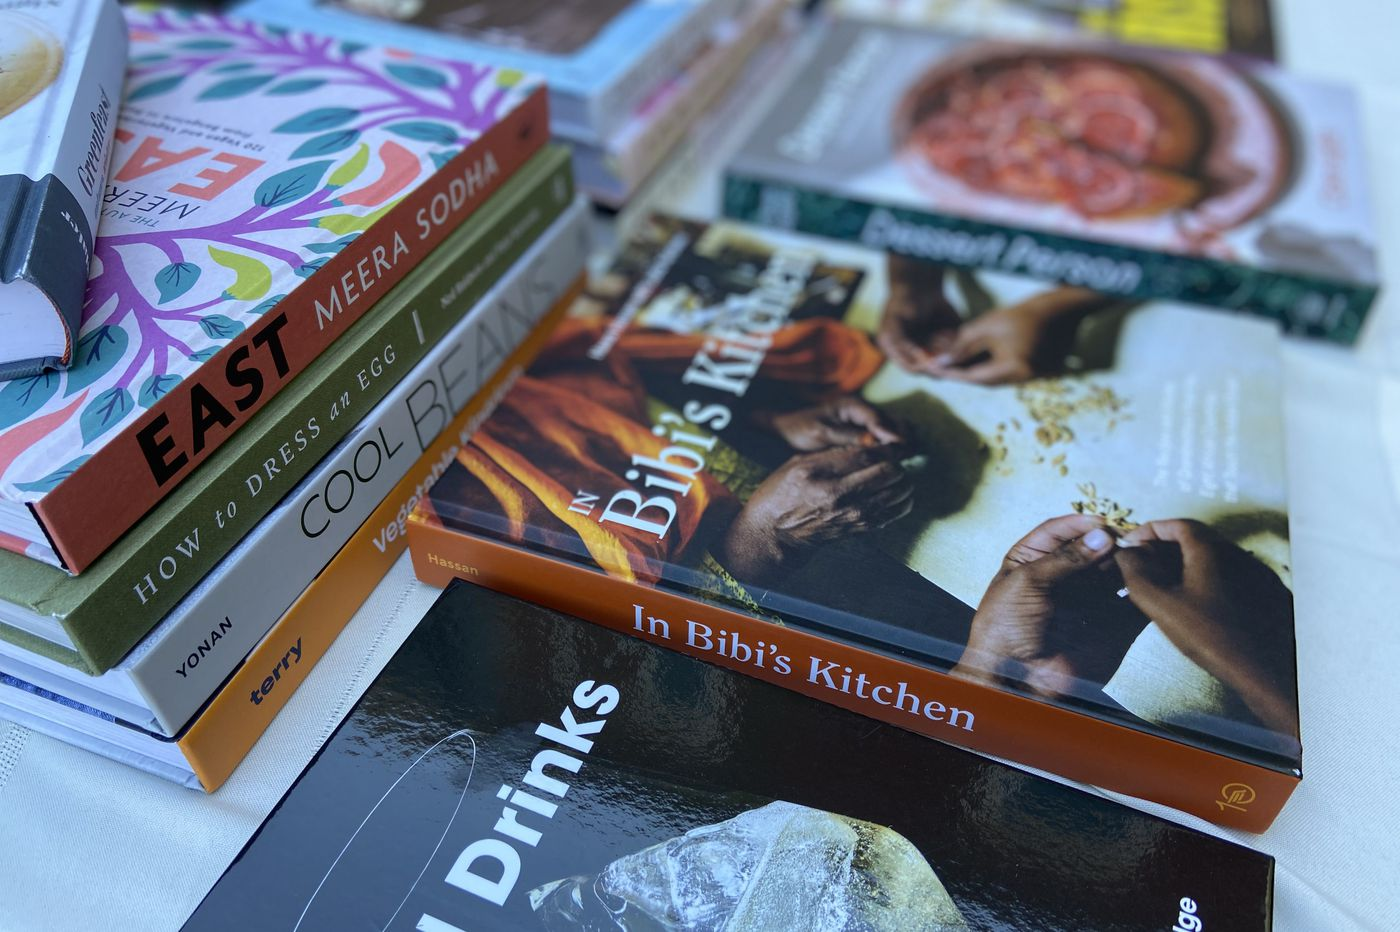 These 21 cookbooks make perfect holiday gifts this year